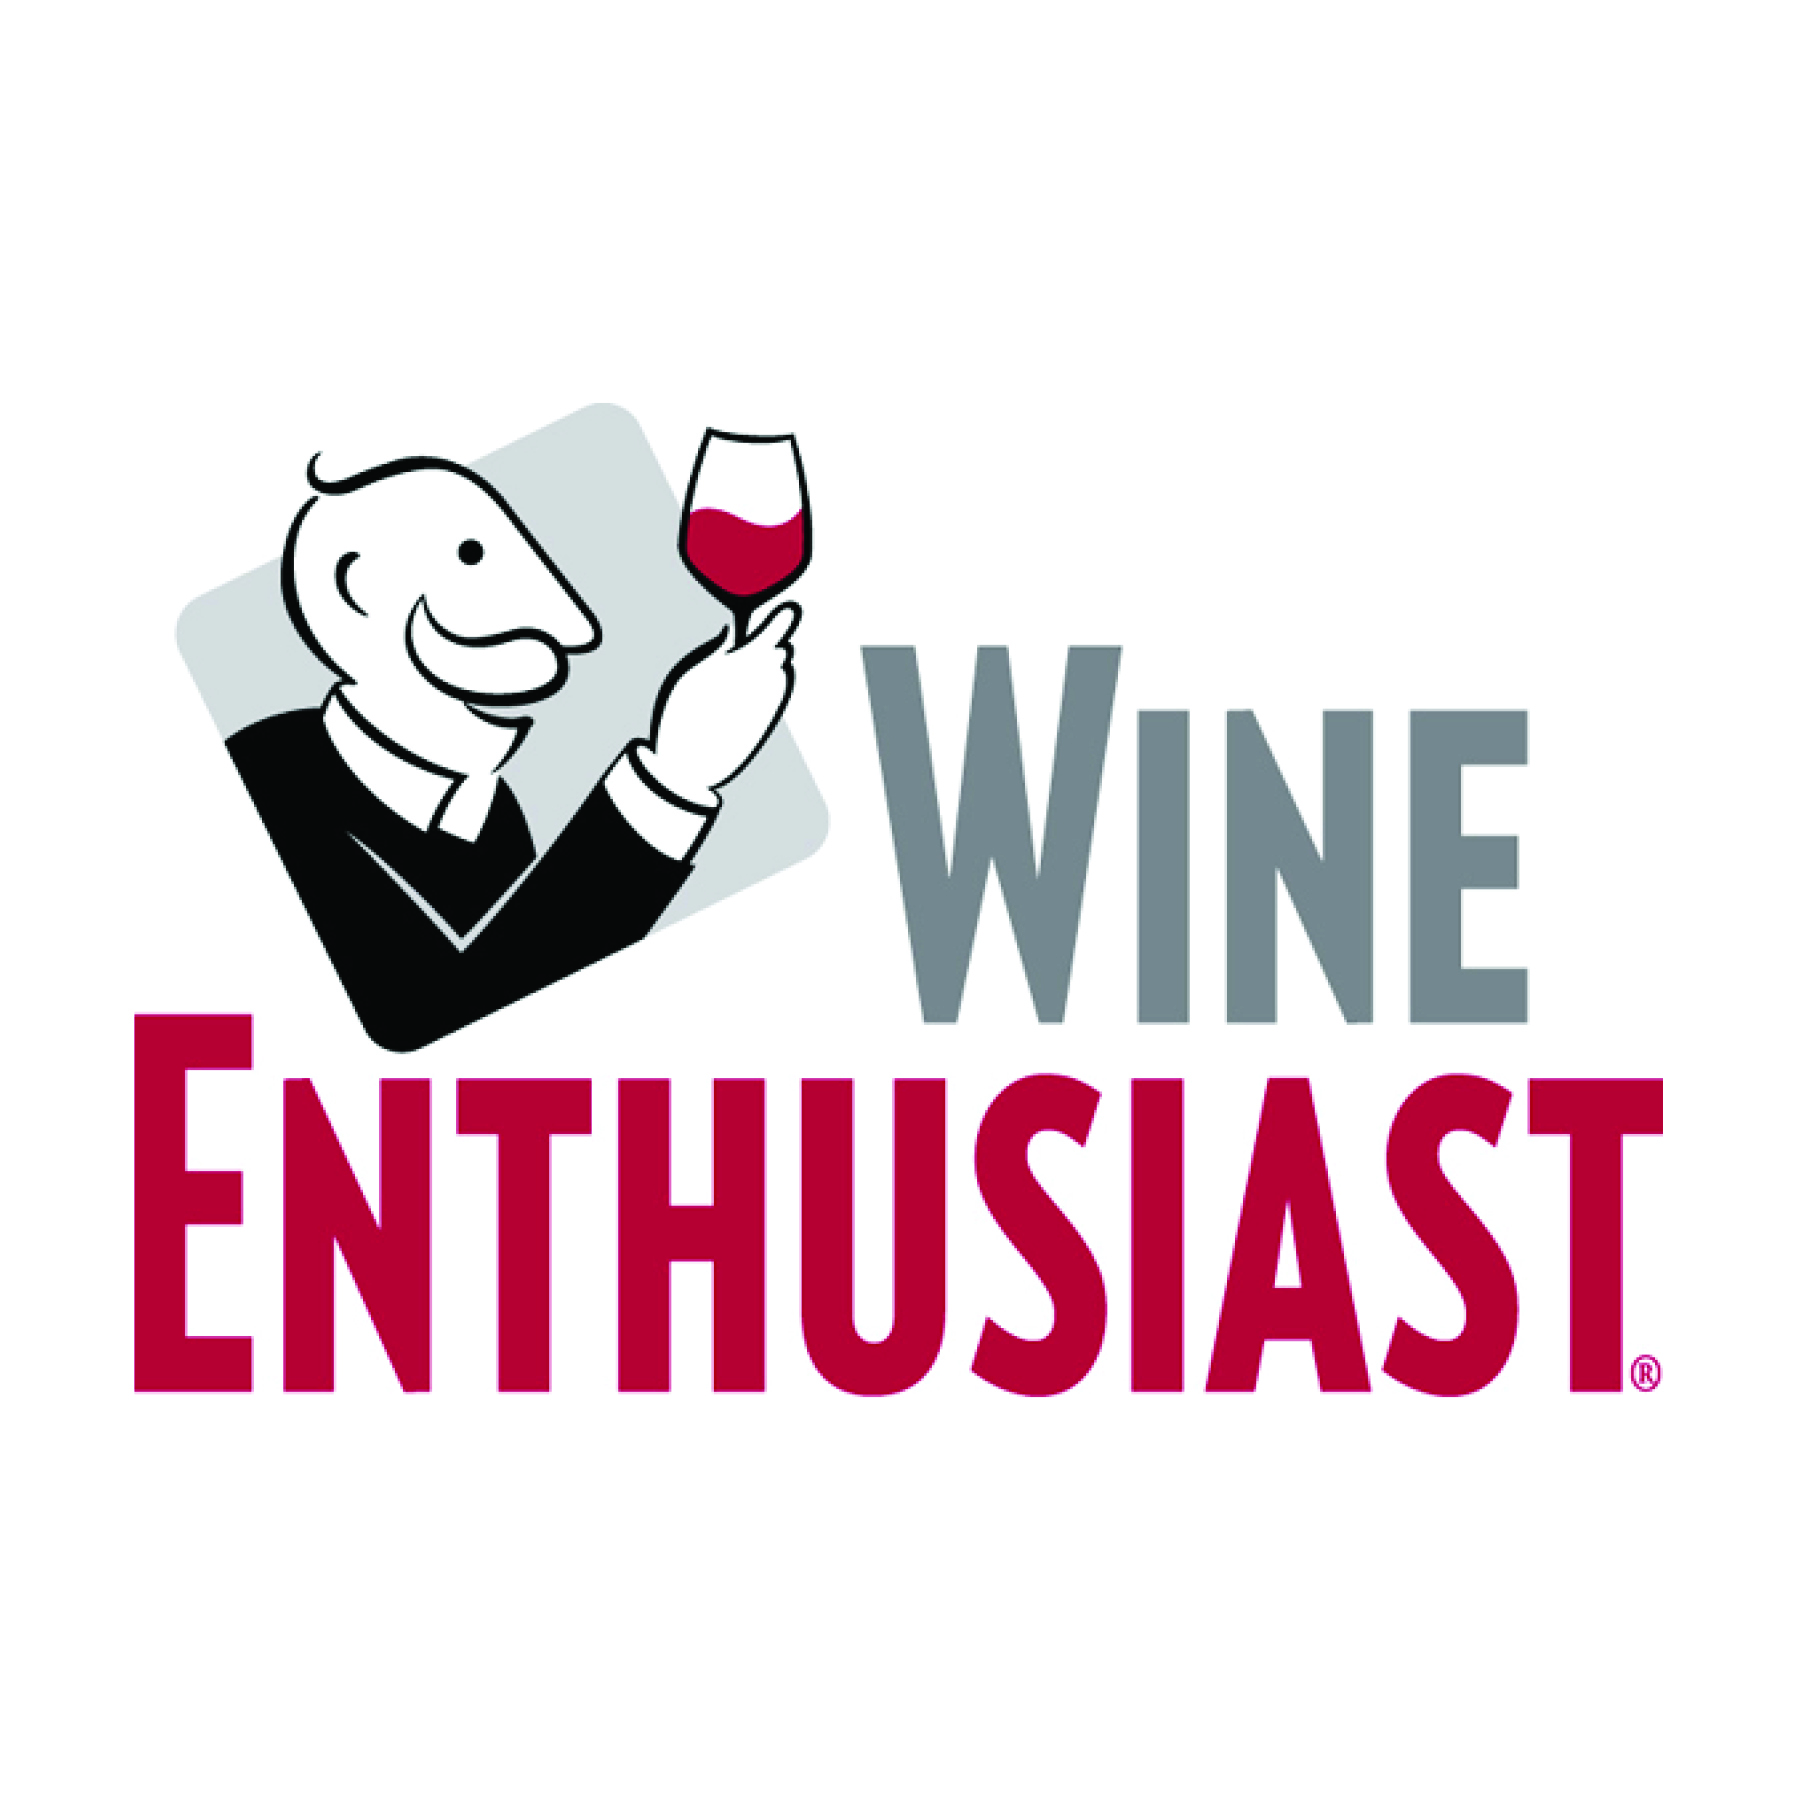 Wine Enthusiast   Reviews of Purple Hands Winery's highly scored wines from Wine Enthusiast.